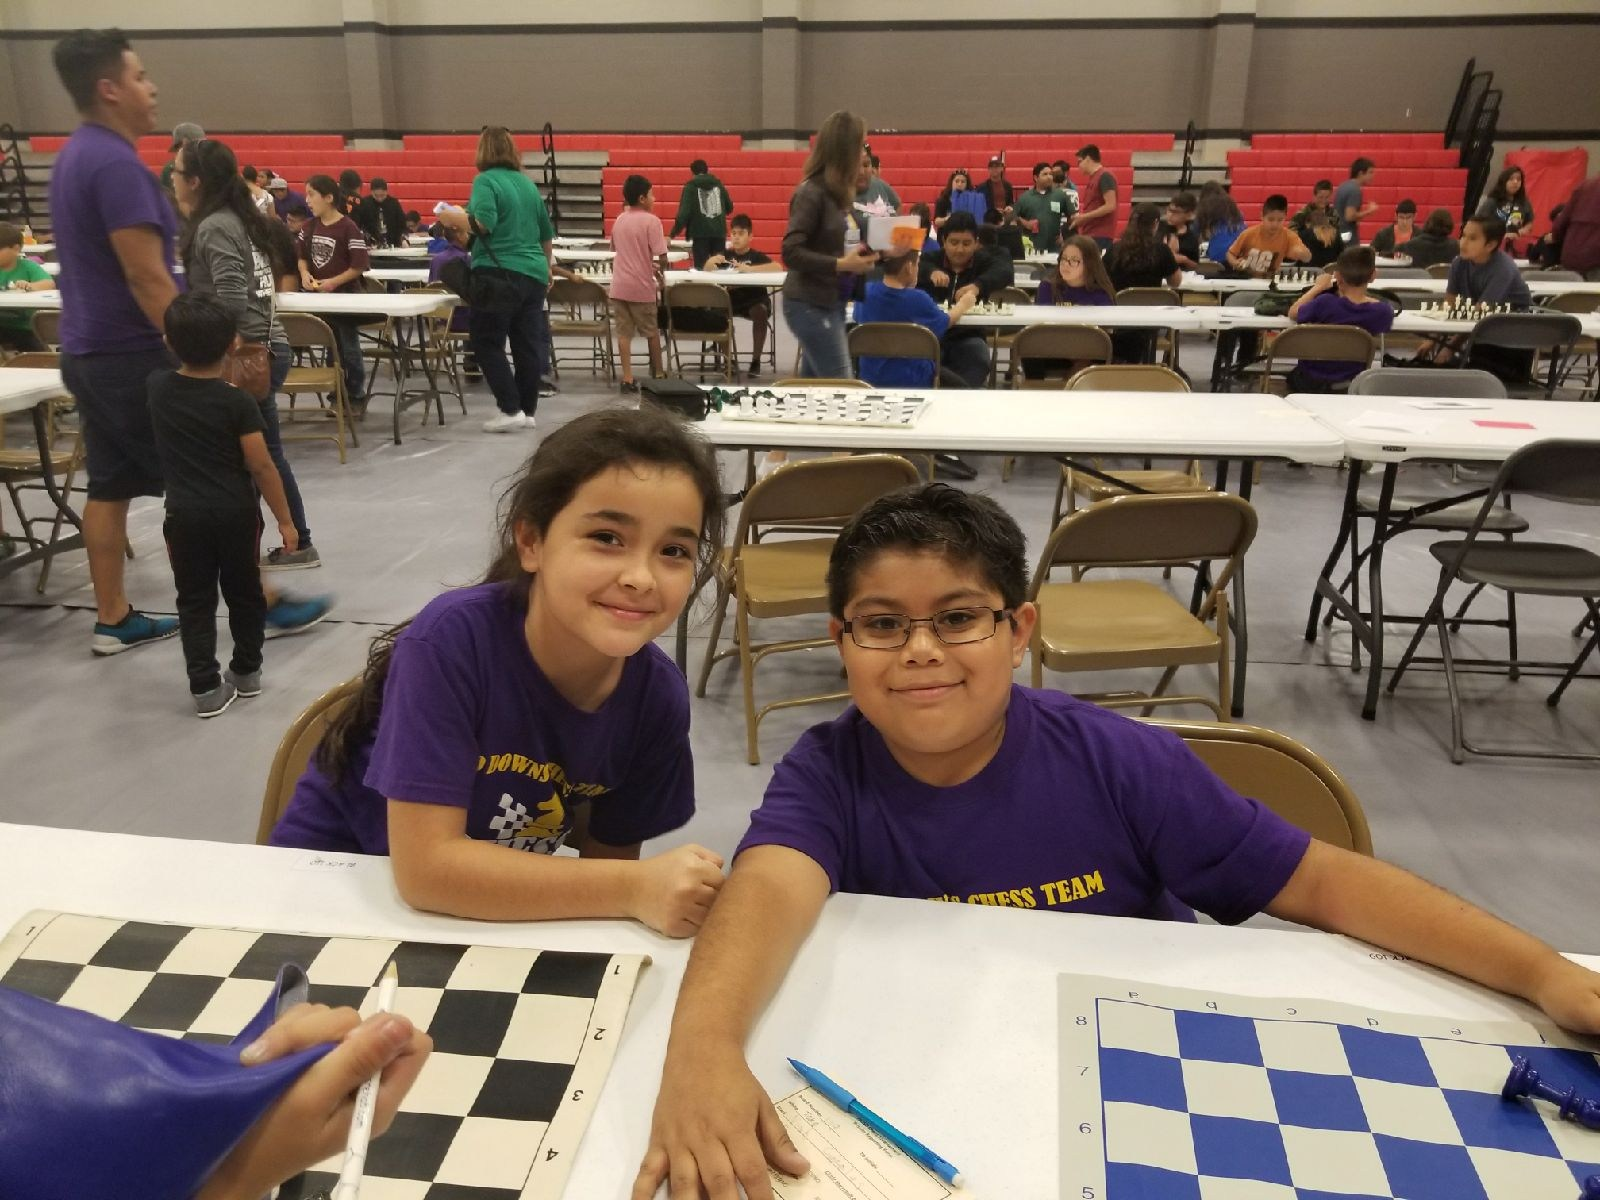 Addisyn Hernandez & Noah Espinoza ~ 3rd Grade Chess Team Members